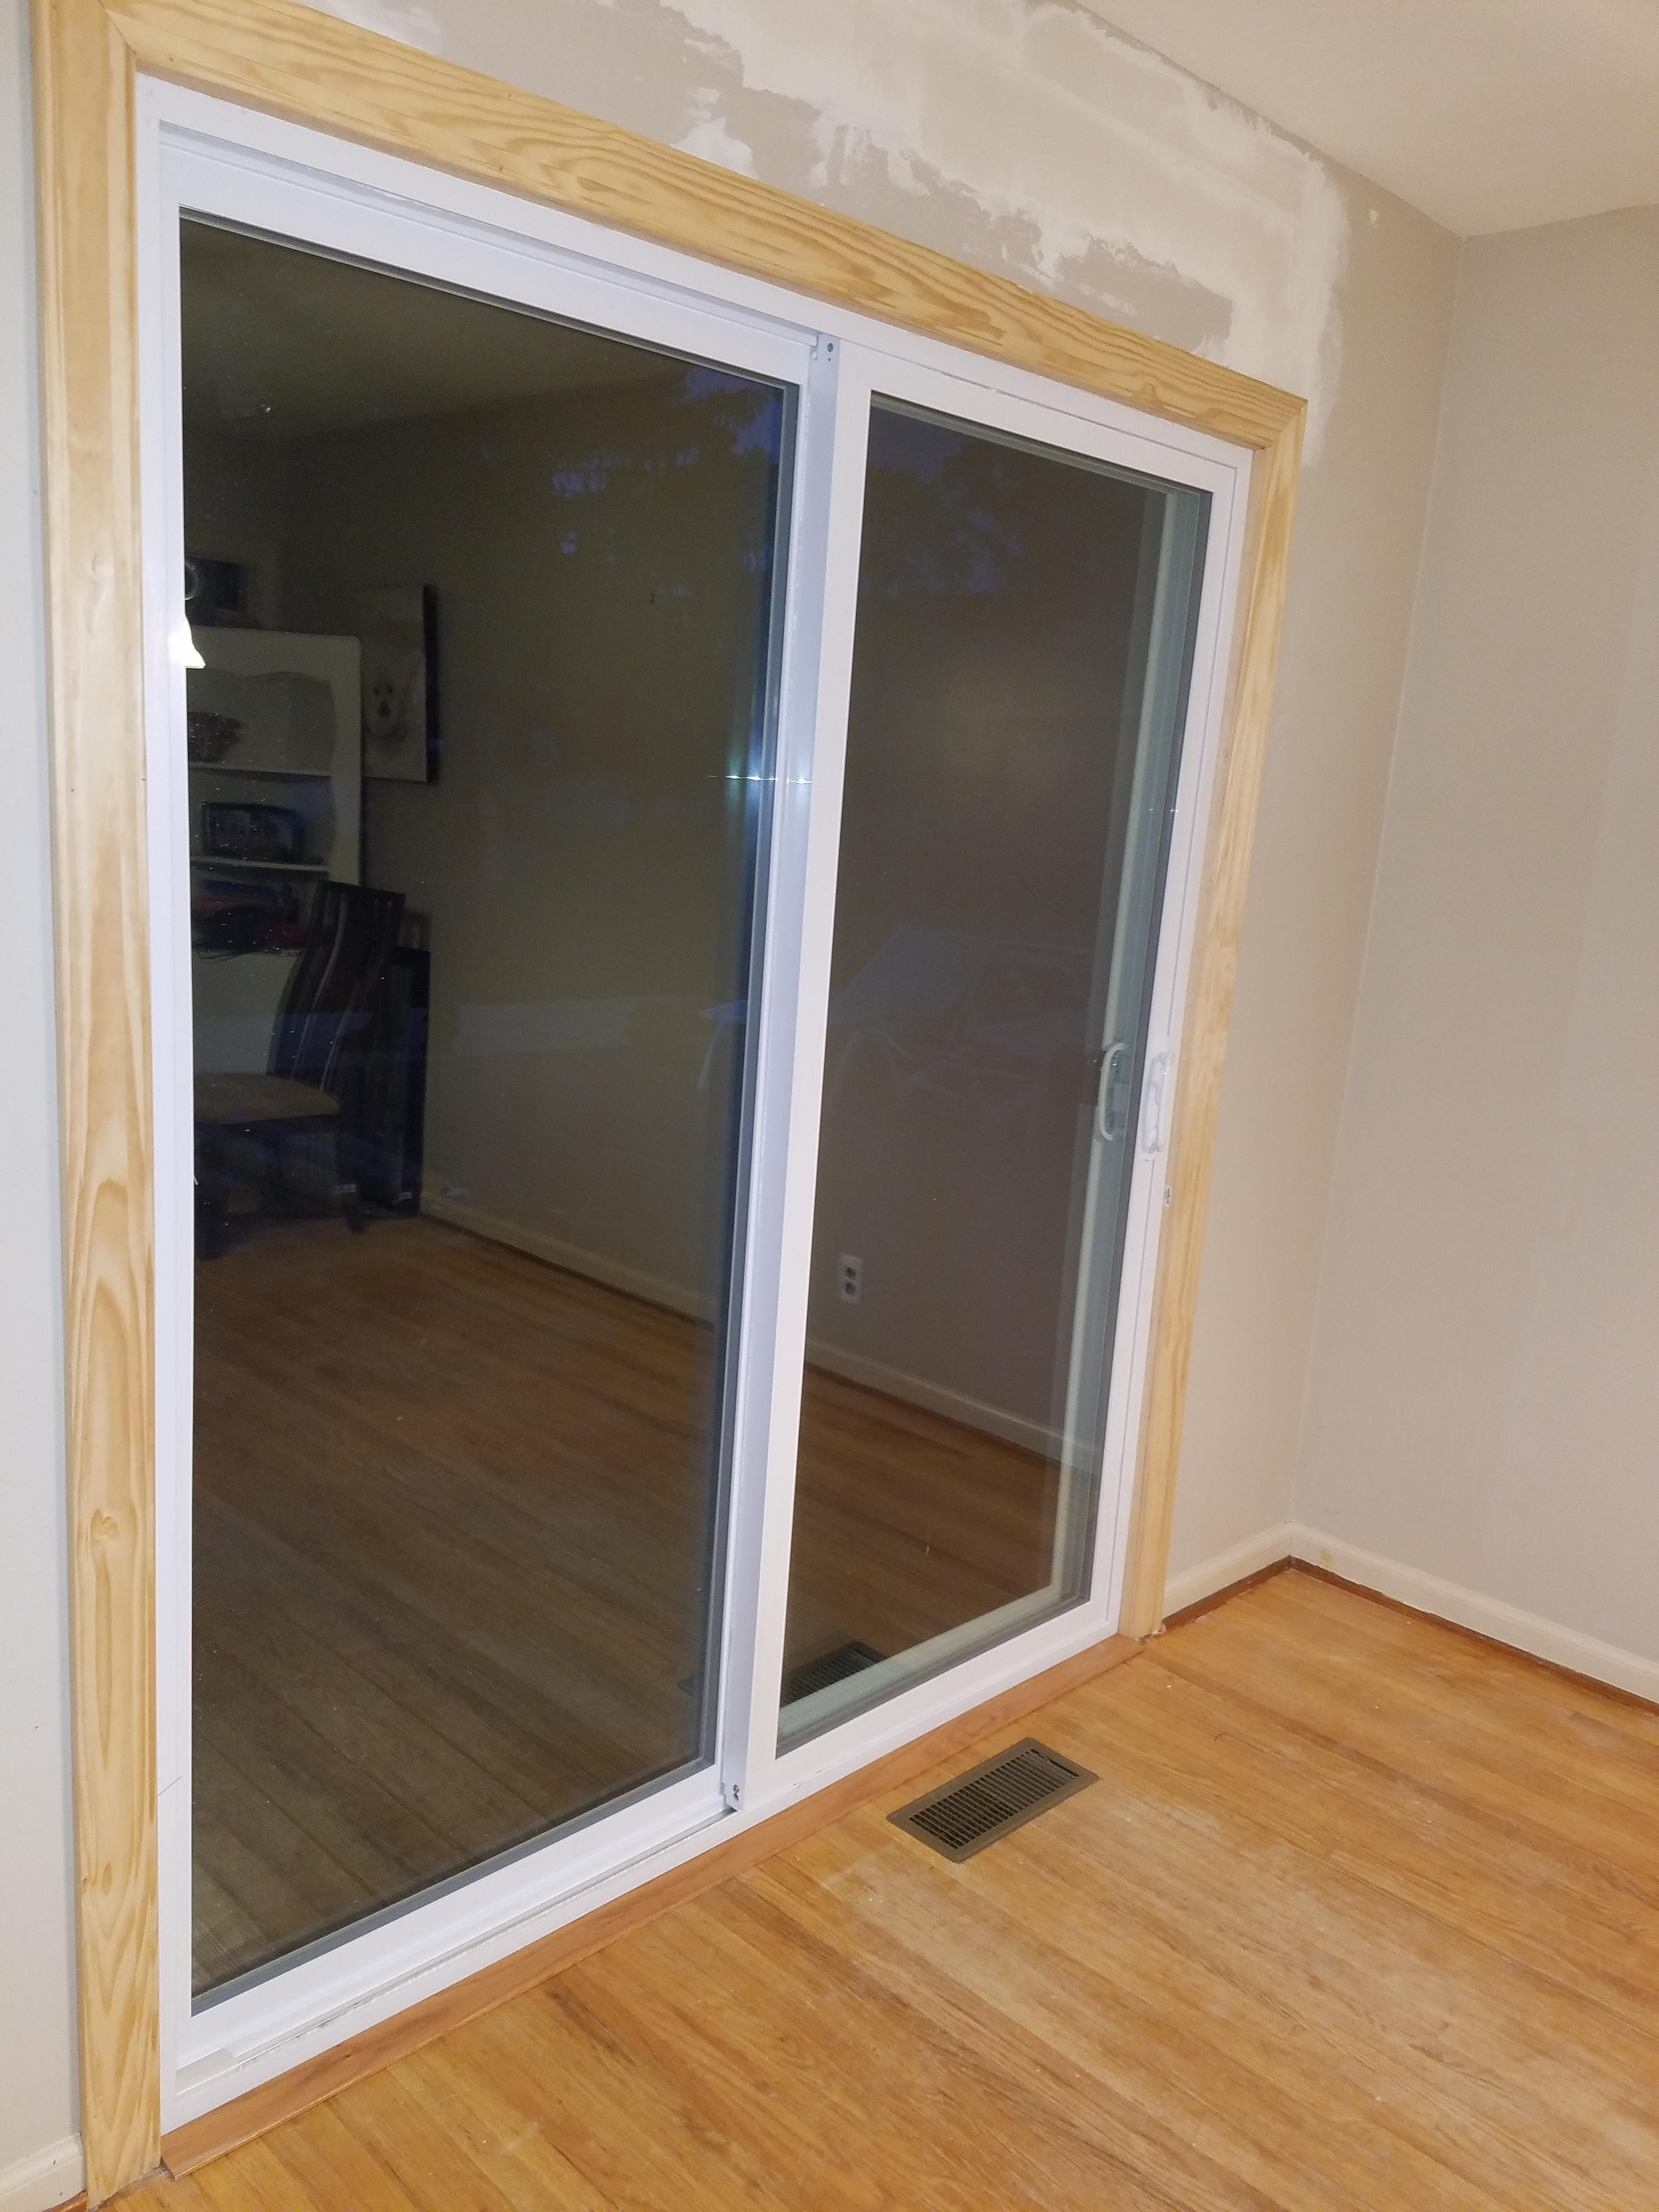 The Door Slides Nicely And Looks Great Even Better I Can Open My Kitchen Window T Thank Guys At Erie Construction Enough